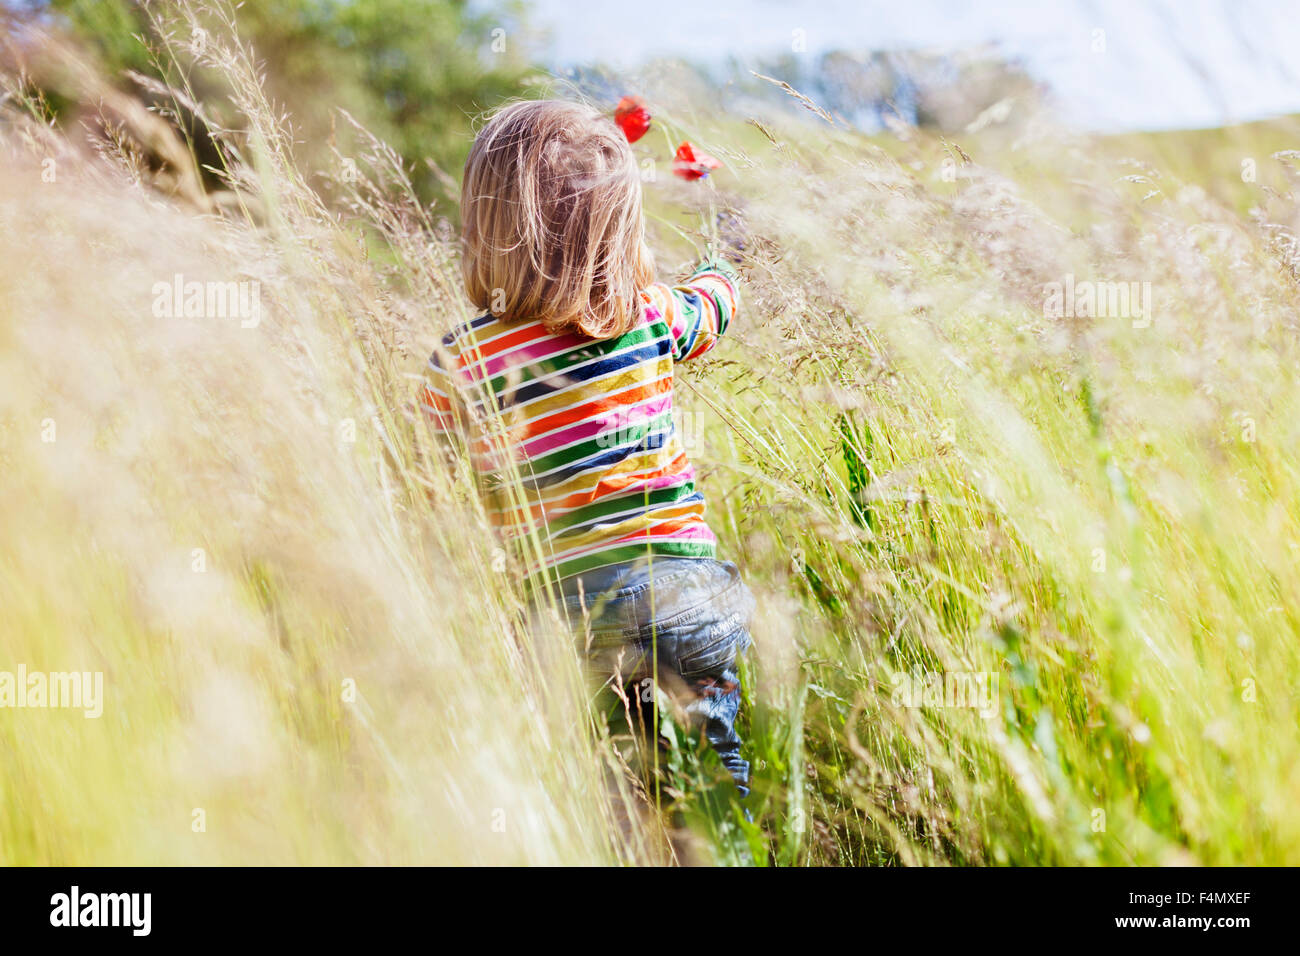 Rear view of girl holding flowers and walking at grassy field - Stock Image